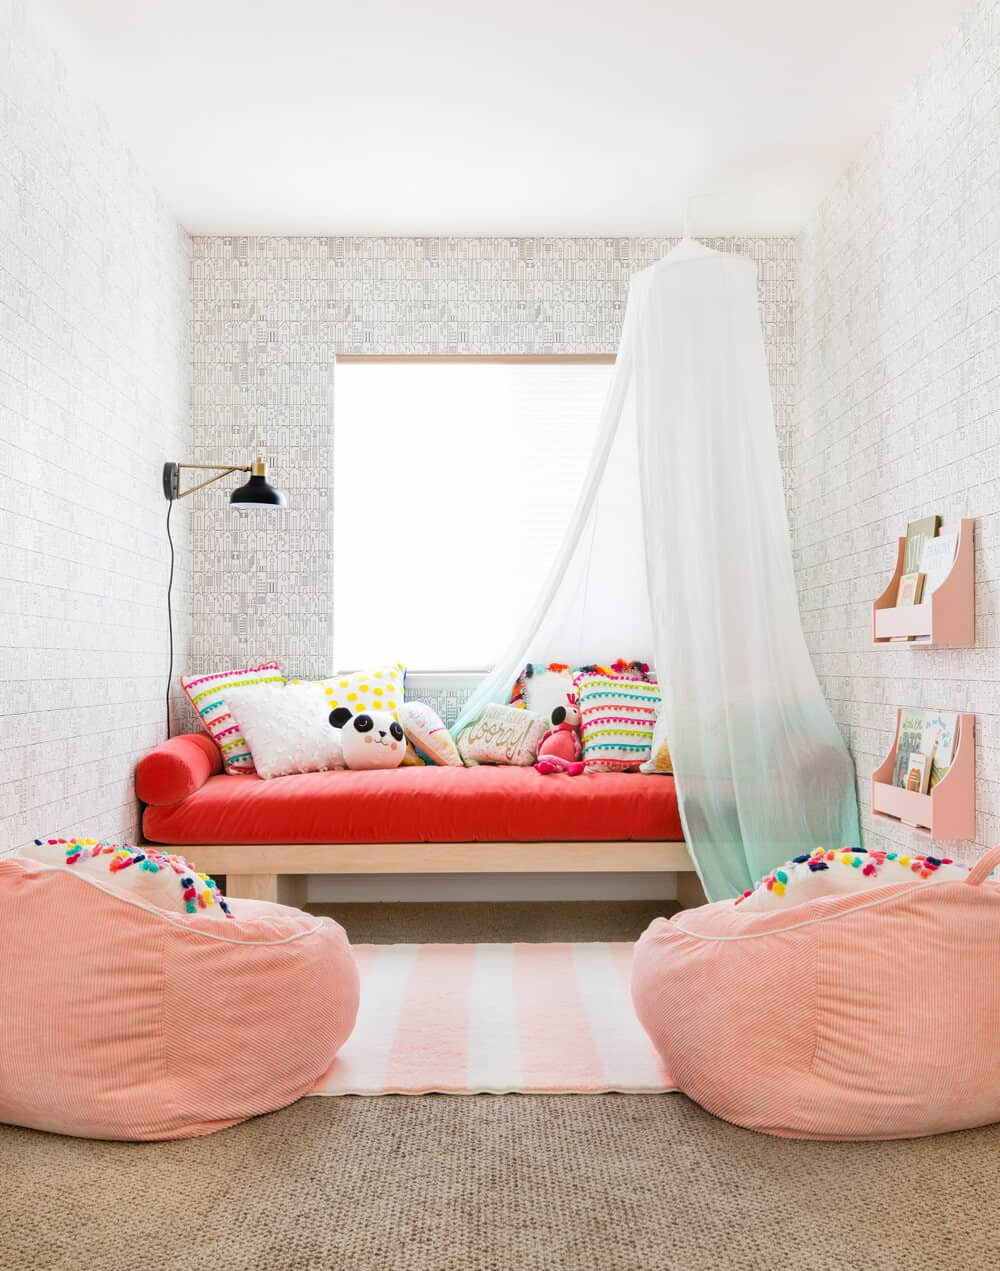 Daybed Construction Target Weekend Makeover Kids Playroom Pink Red Wallpaper Canopy 1